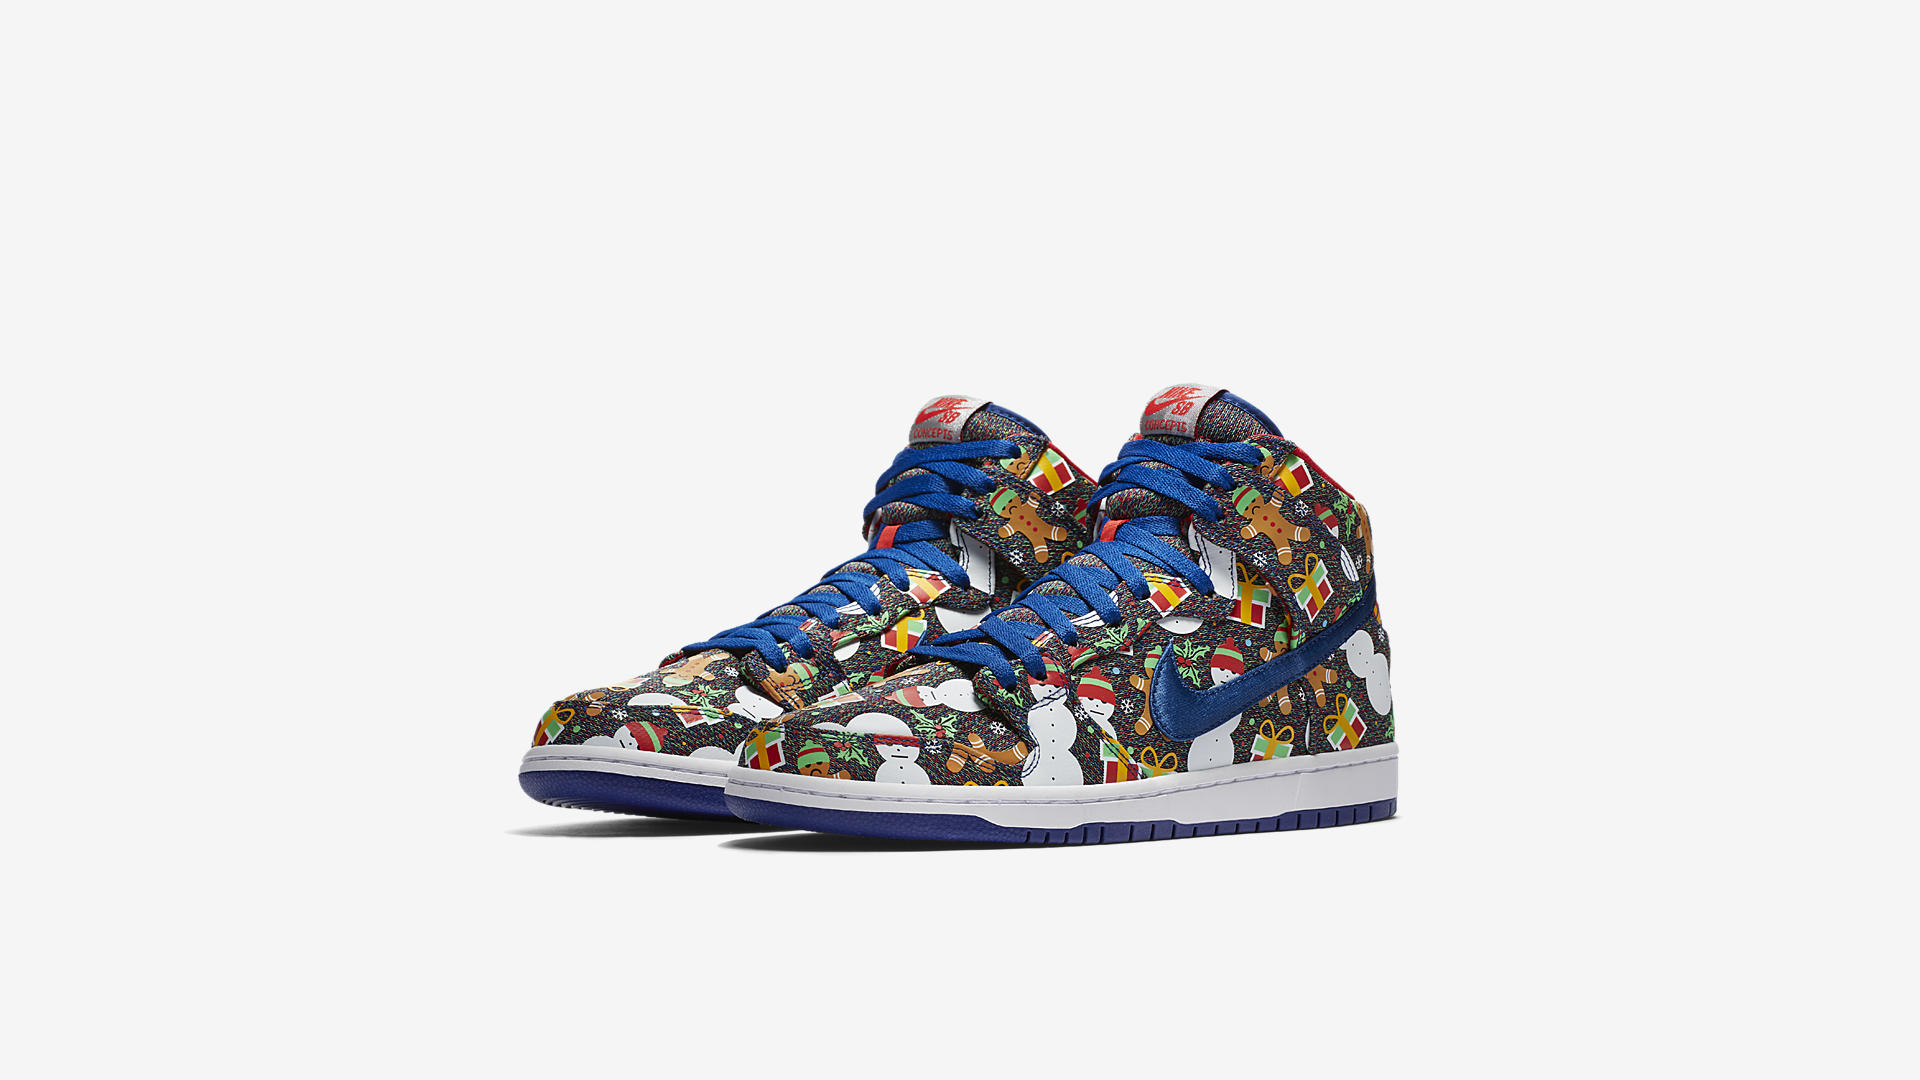 Concepts x Nike SB Dunk Pro High Ugly Sweater 1